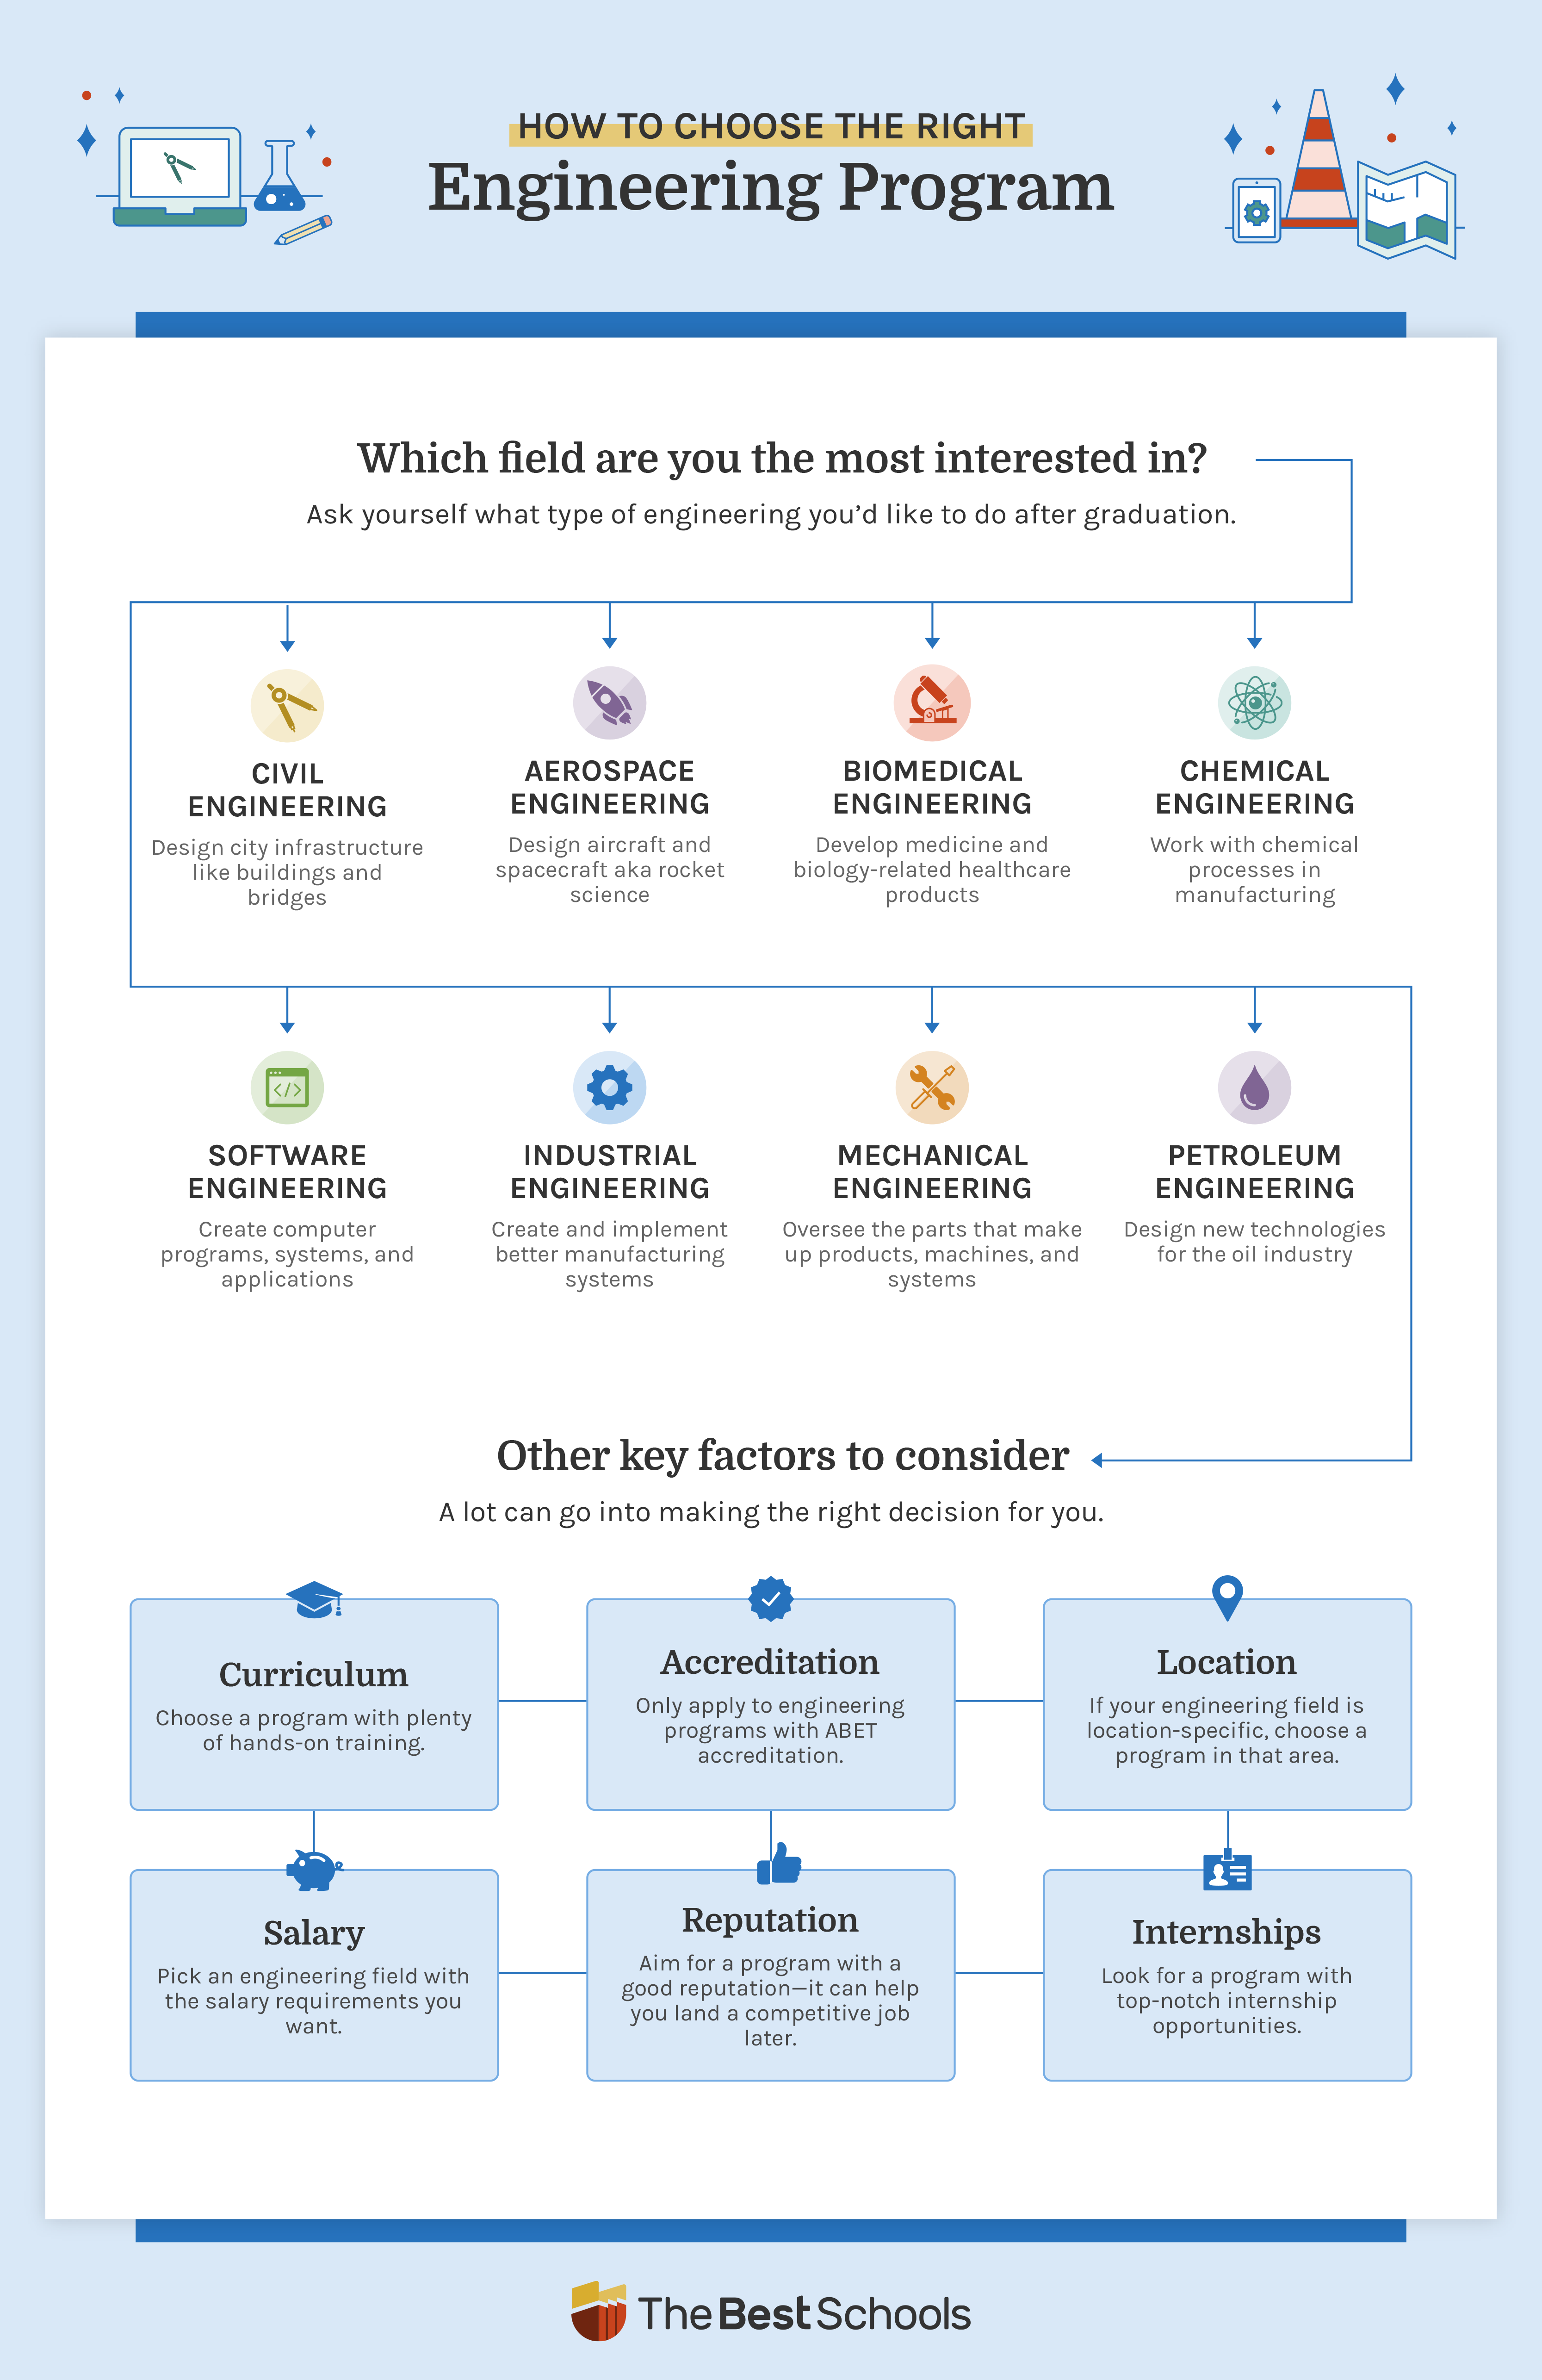 Image of a decision tree infographic that helps students find their engineering degree